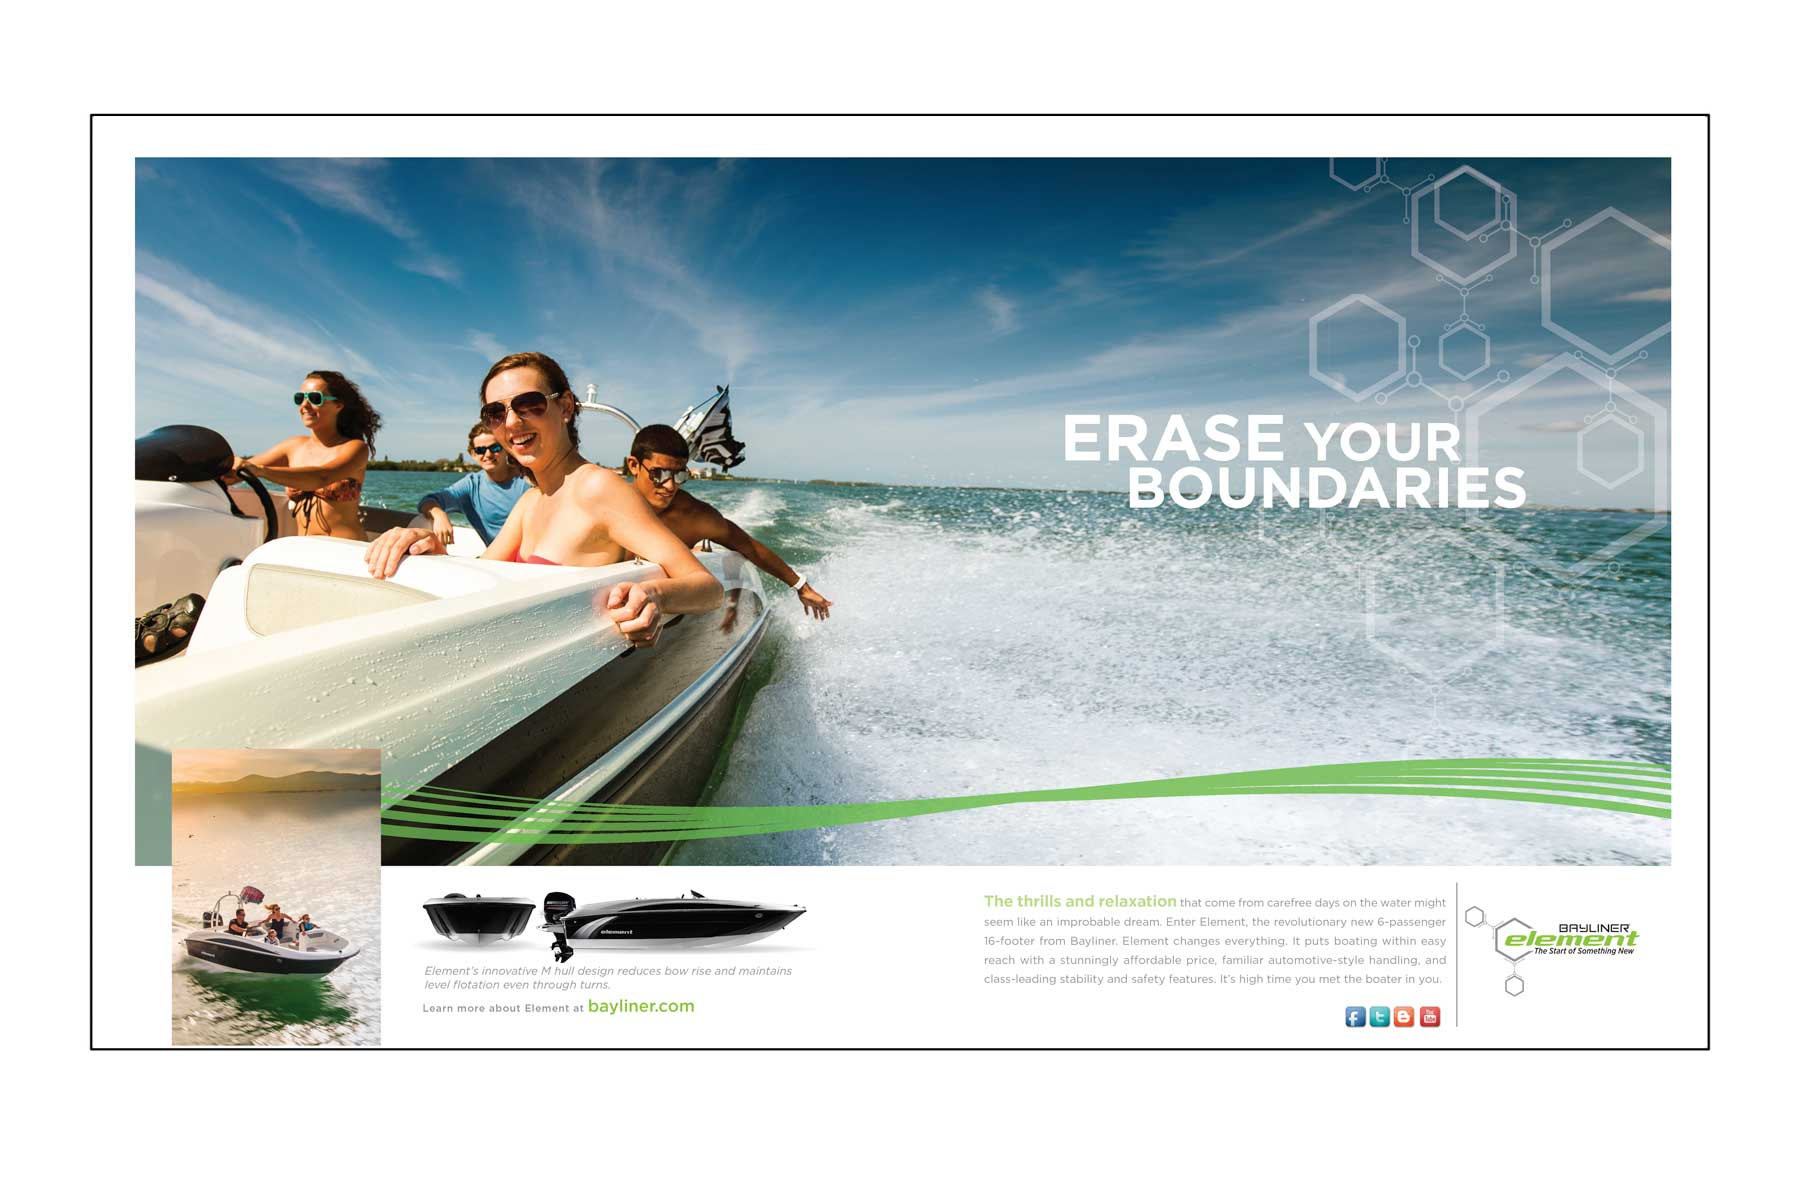 """Advertisement image of friends in an Element boat with text """"Erase your boundaries"""""""